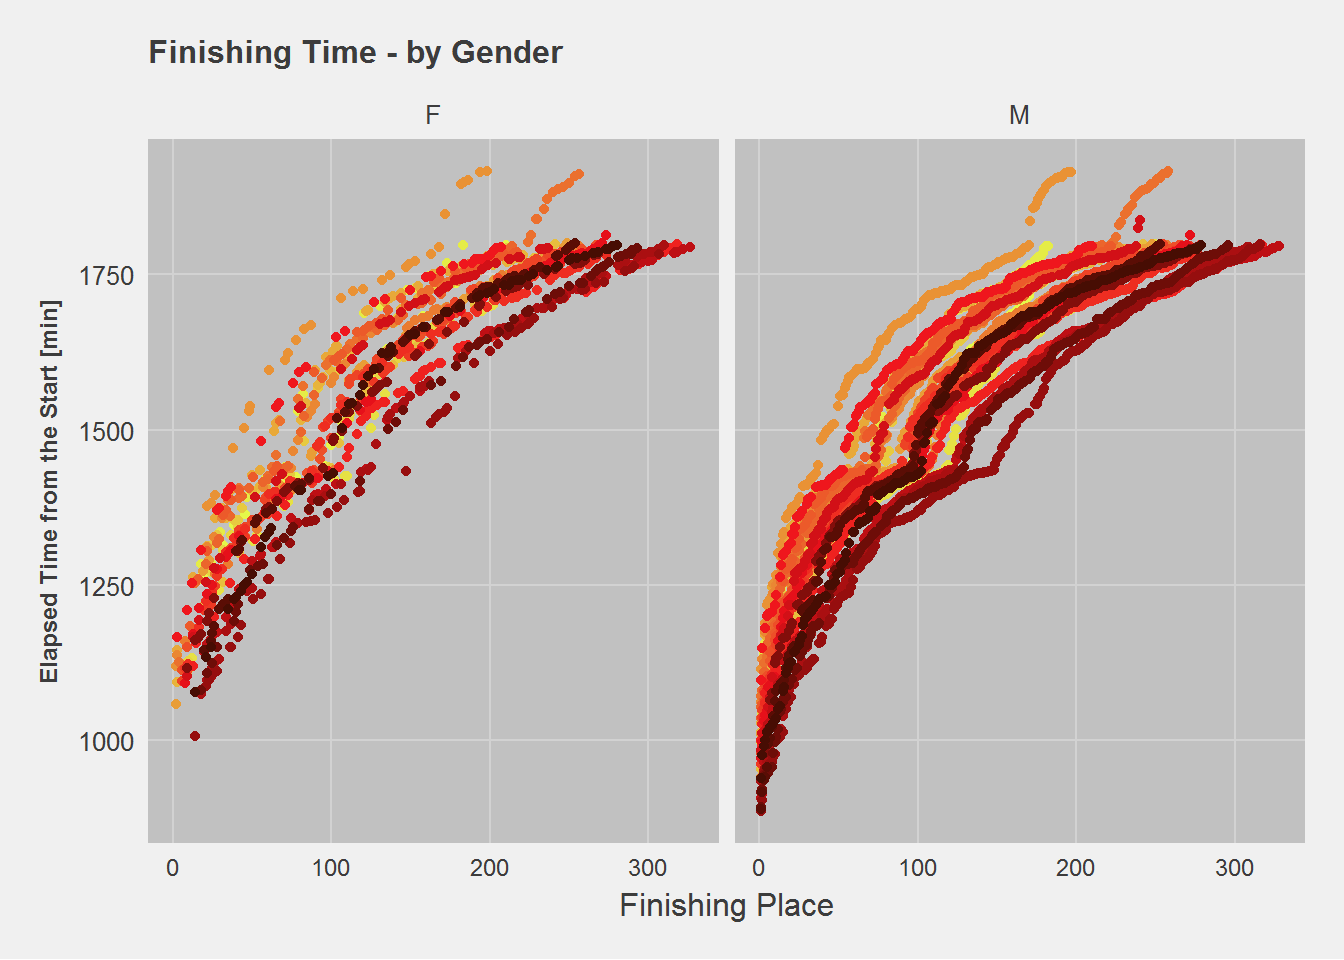 Finishing Times by Gender